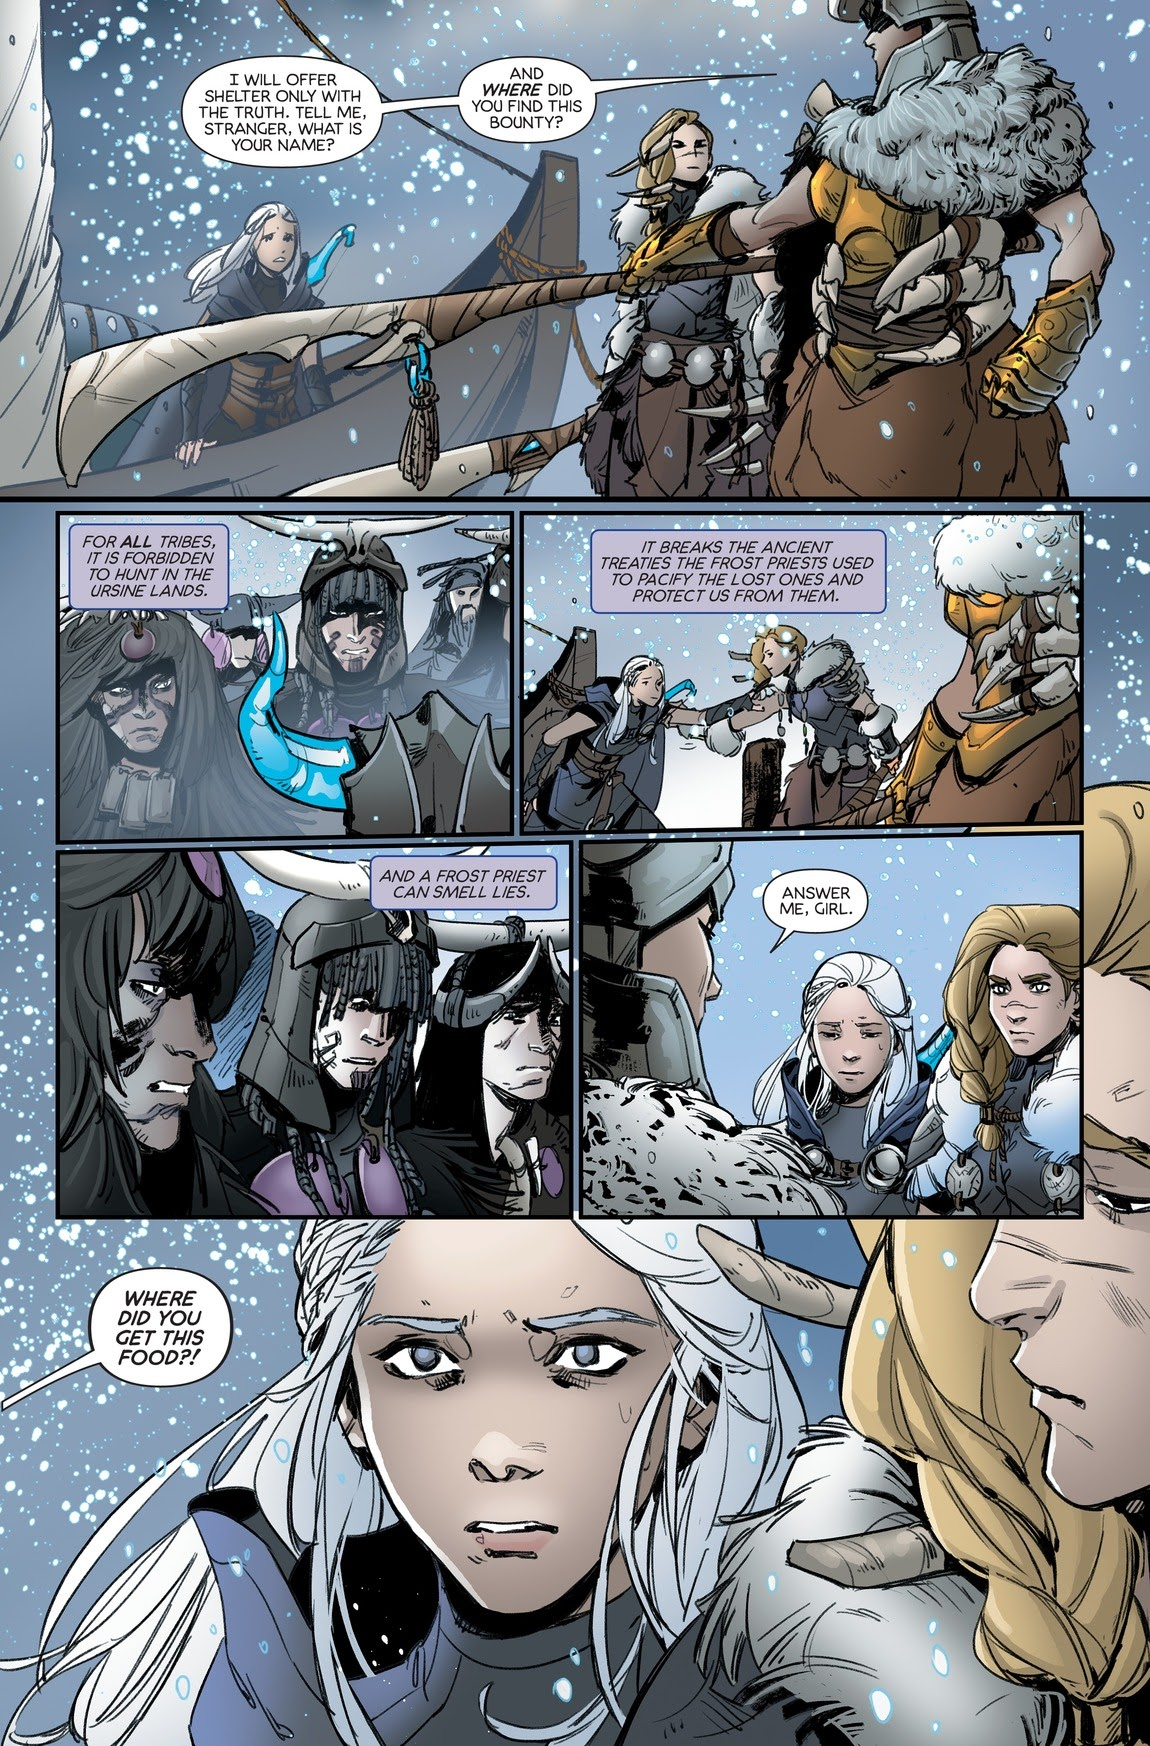 Ashe Lol Porno Comics league of legends ashe warmother special edition issue 3